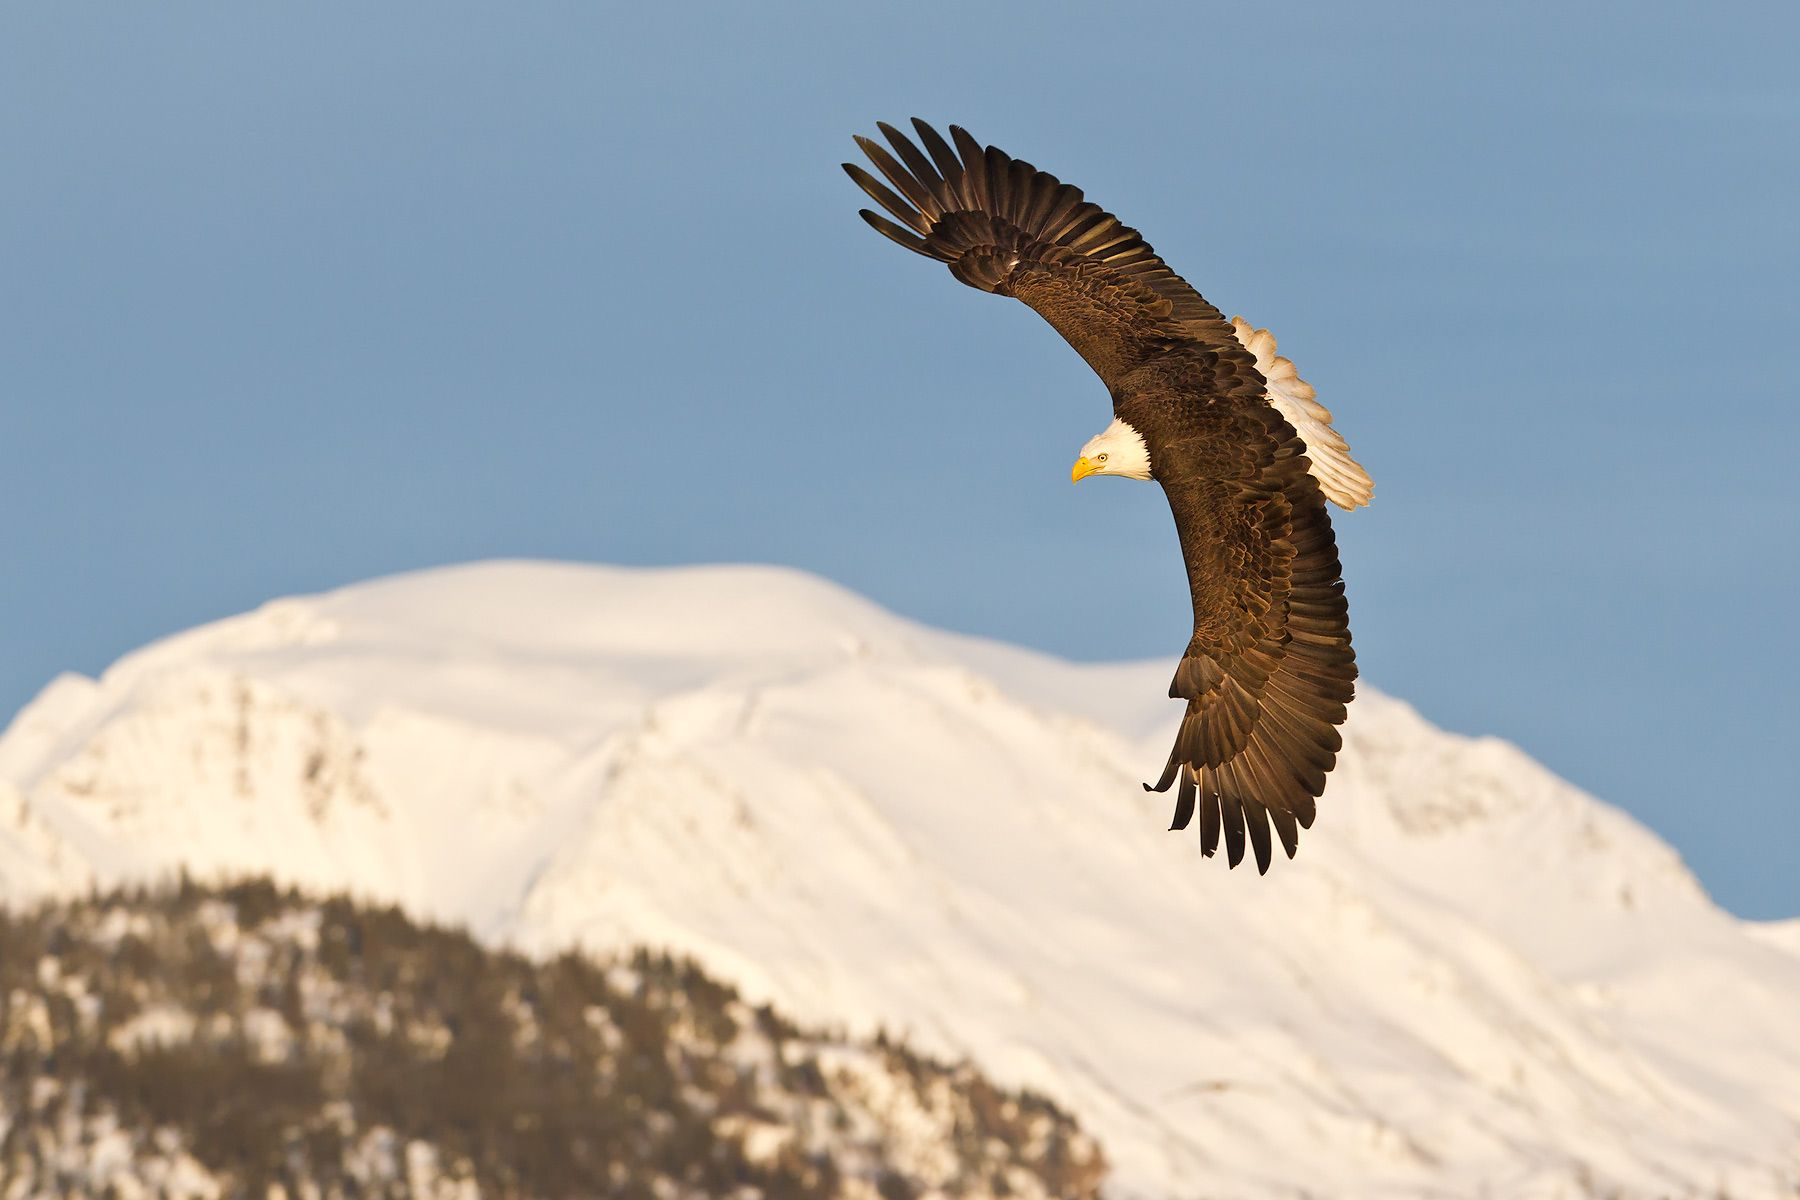 Bald-eagle-banking-with-with-mountain-bkgd-E07G2711-Kachemak-Bay,-Homer,-AK.jpg